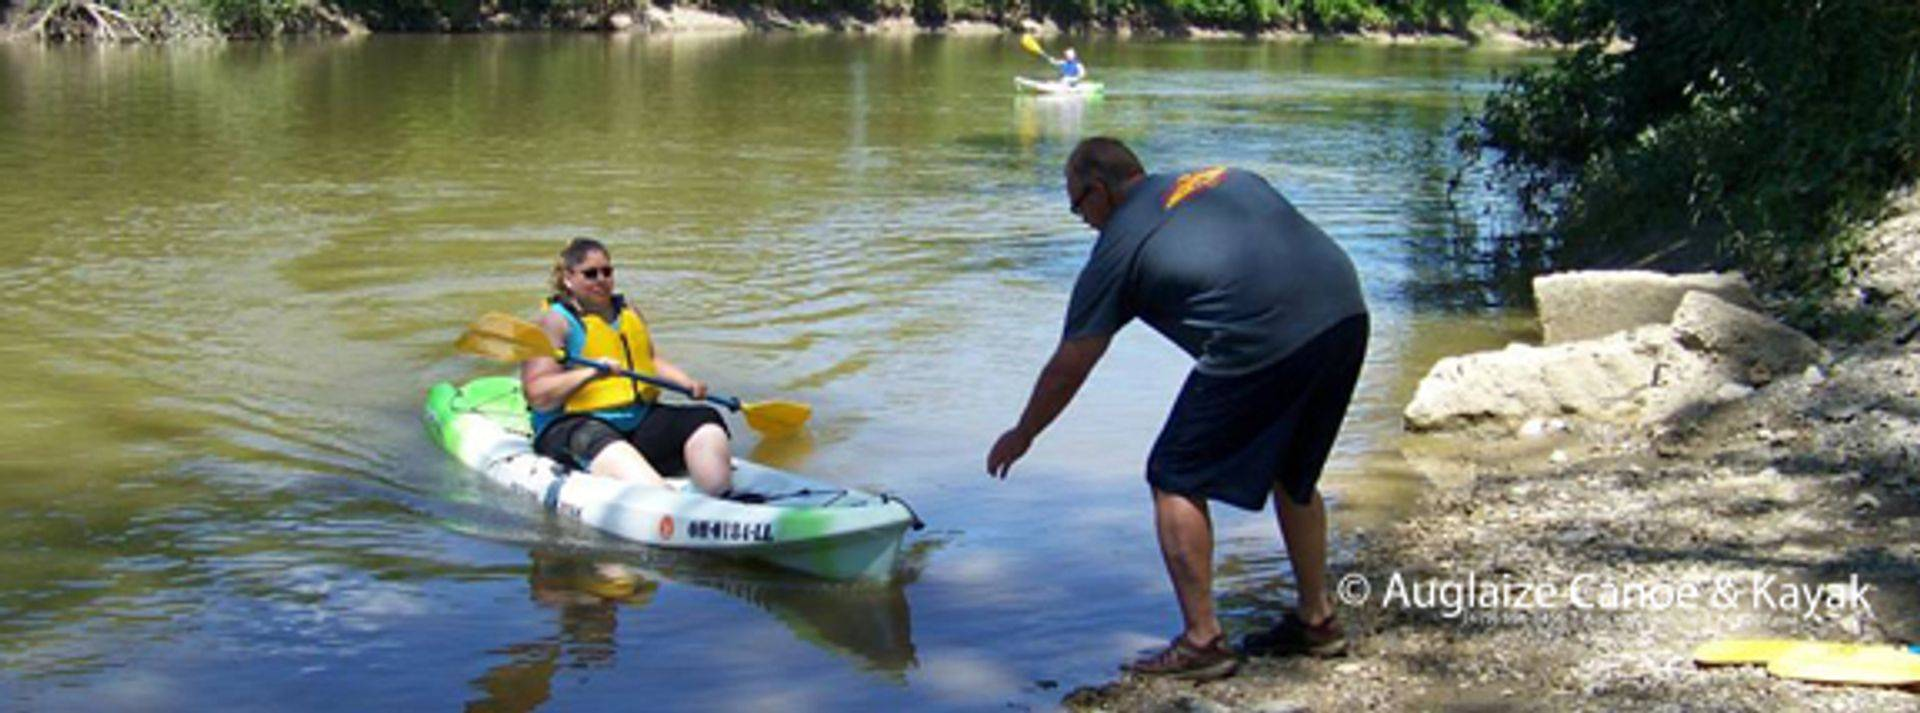 The Family is available to help you enjoy your paddling adventure.